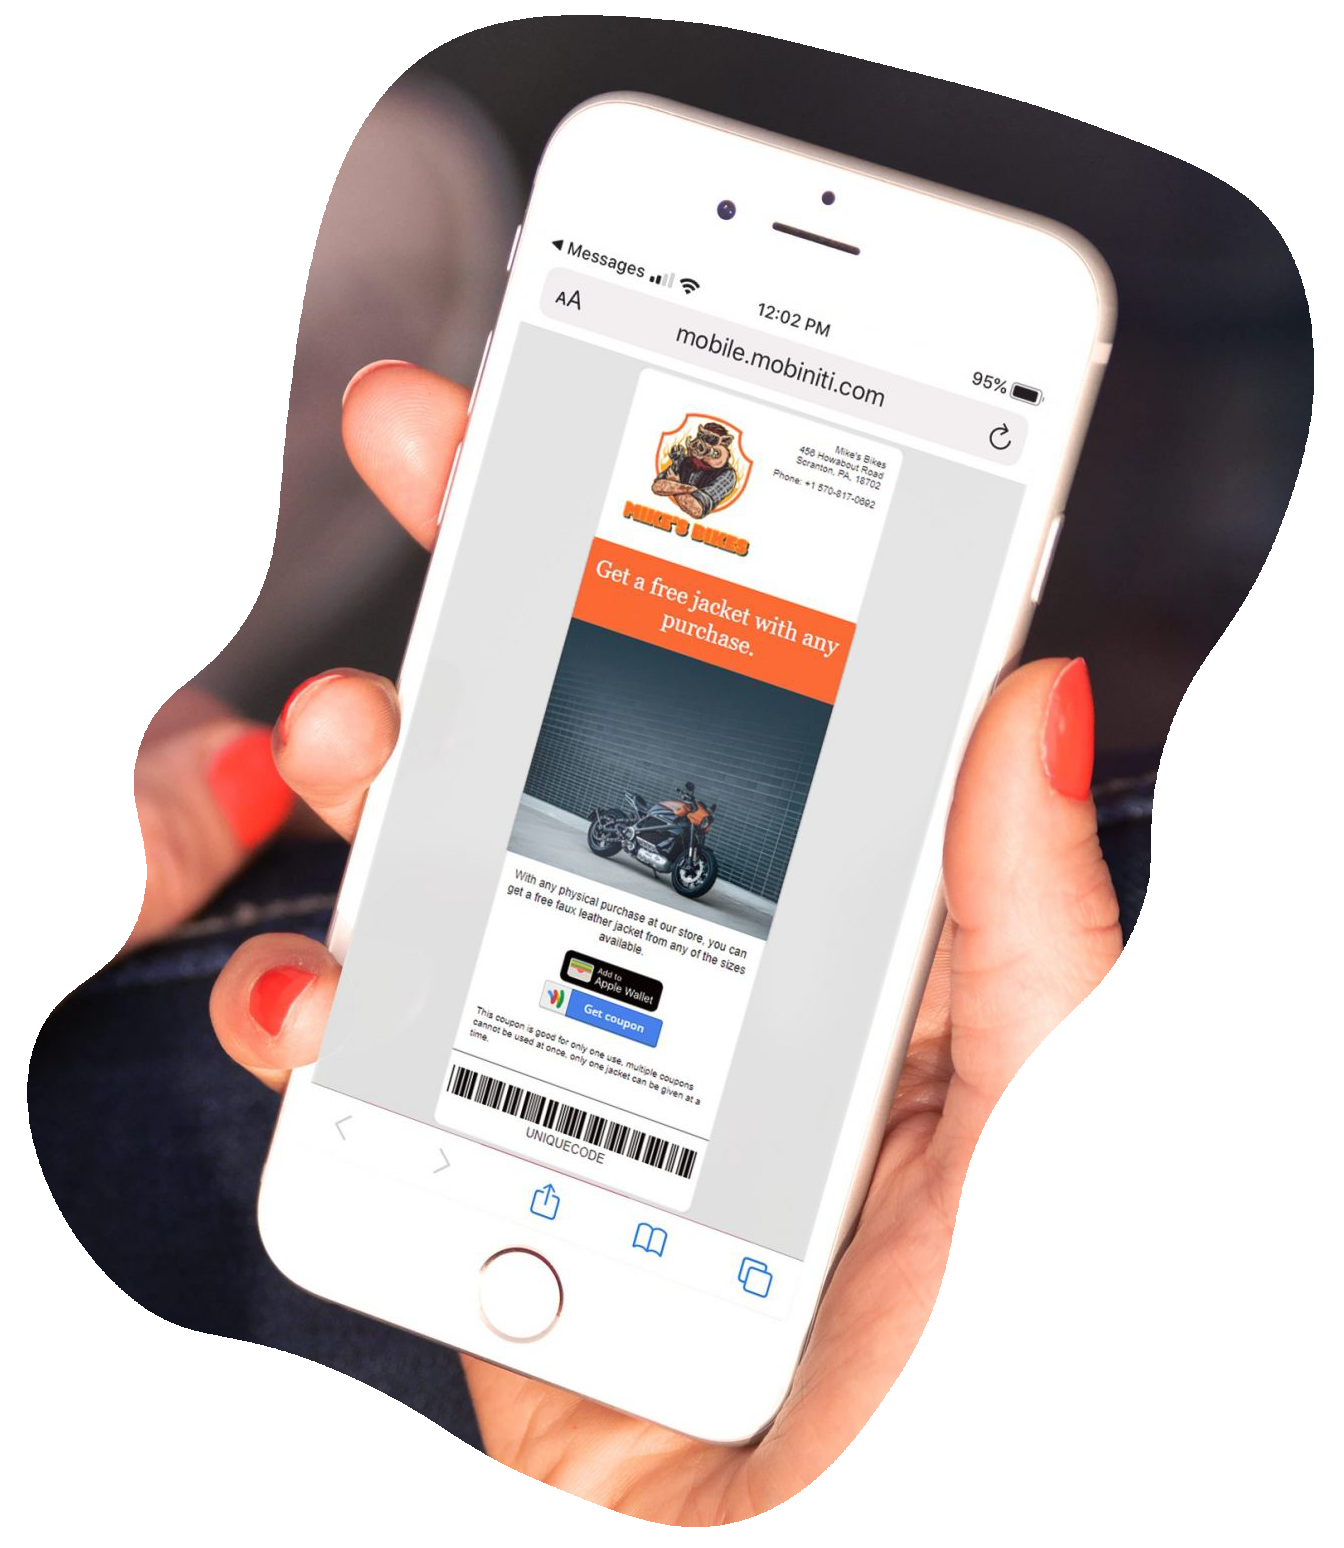 Mobile coupons are the best incentive for driving sales.